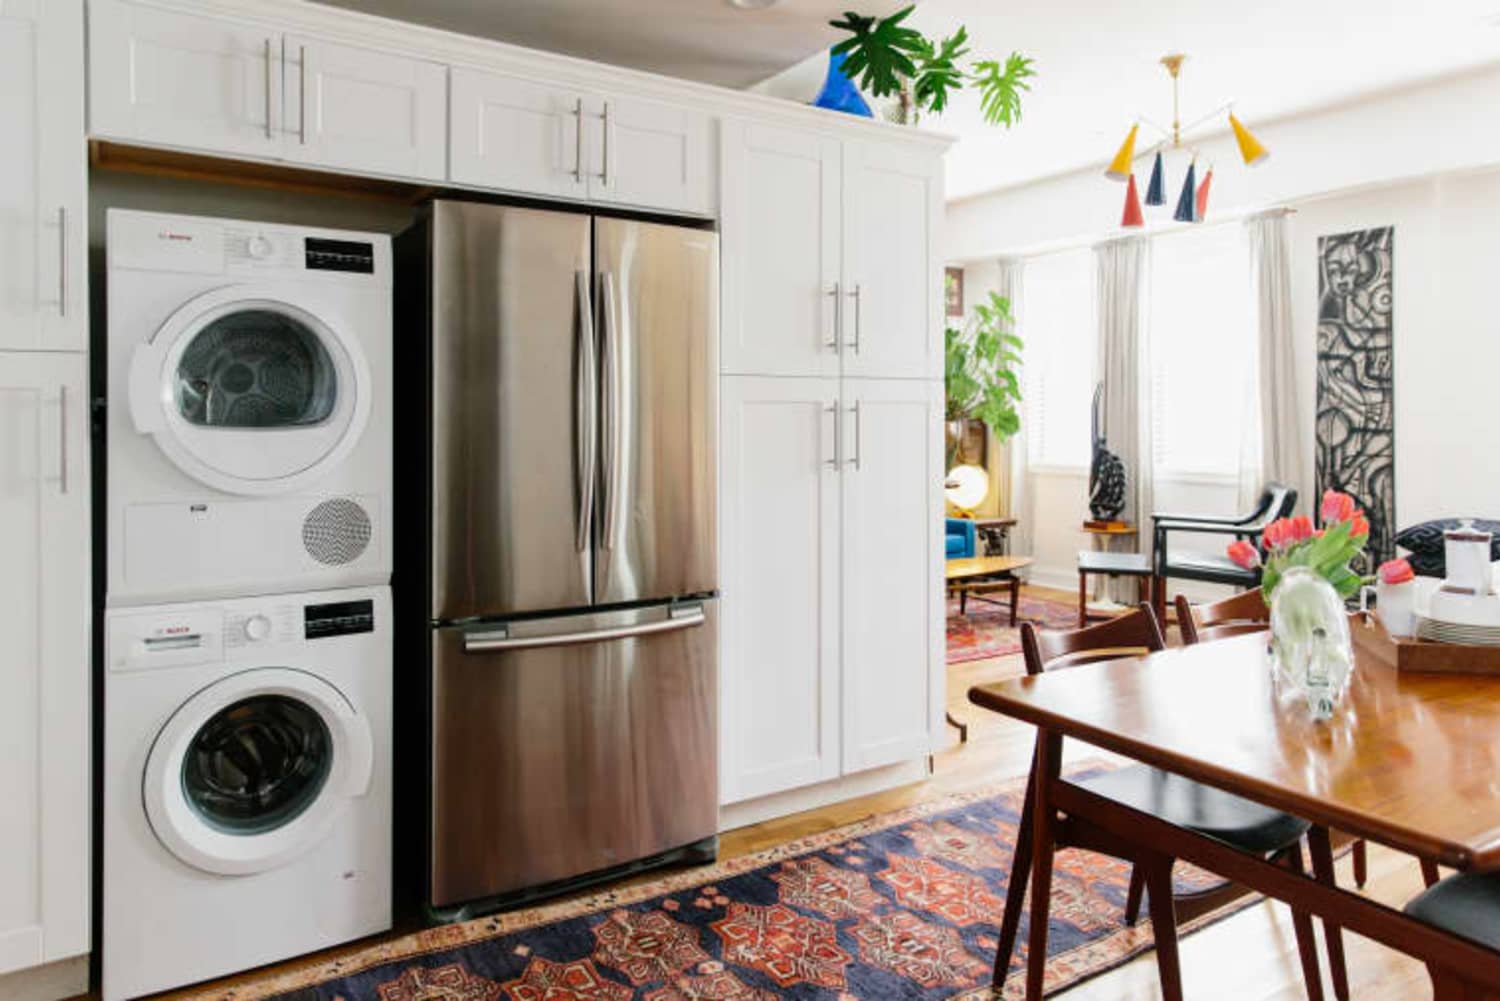 You Should Pour Vinegar into Your Washing Machine—Here's Why